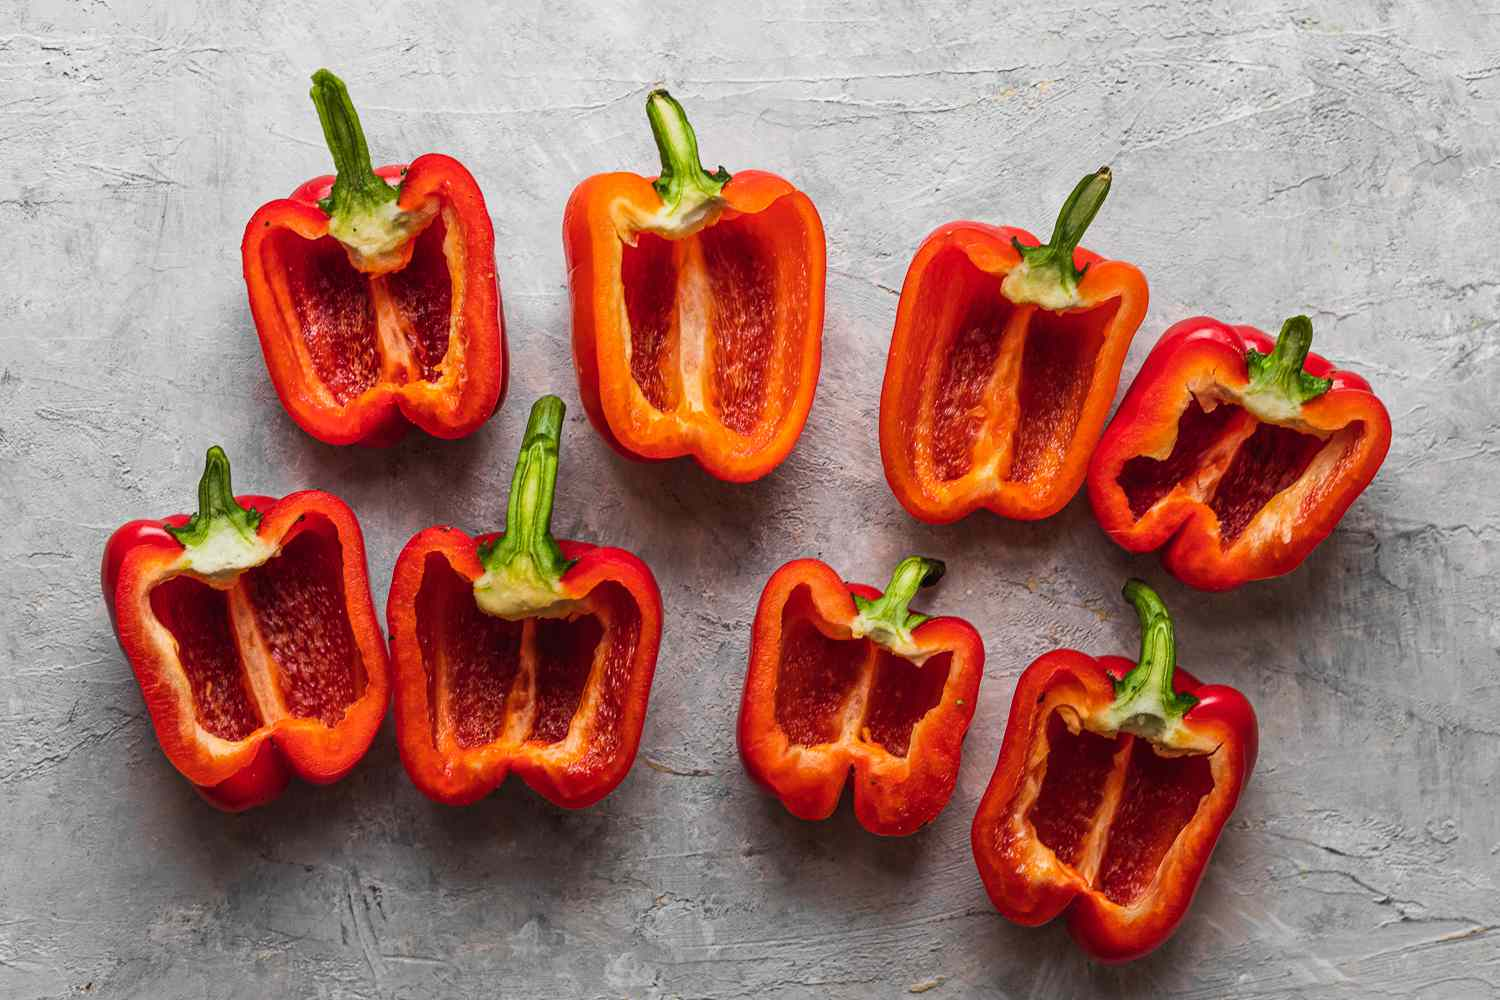 red bells peppers cut lengthwise with the seeds and membranes removed